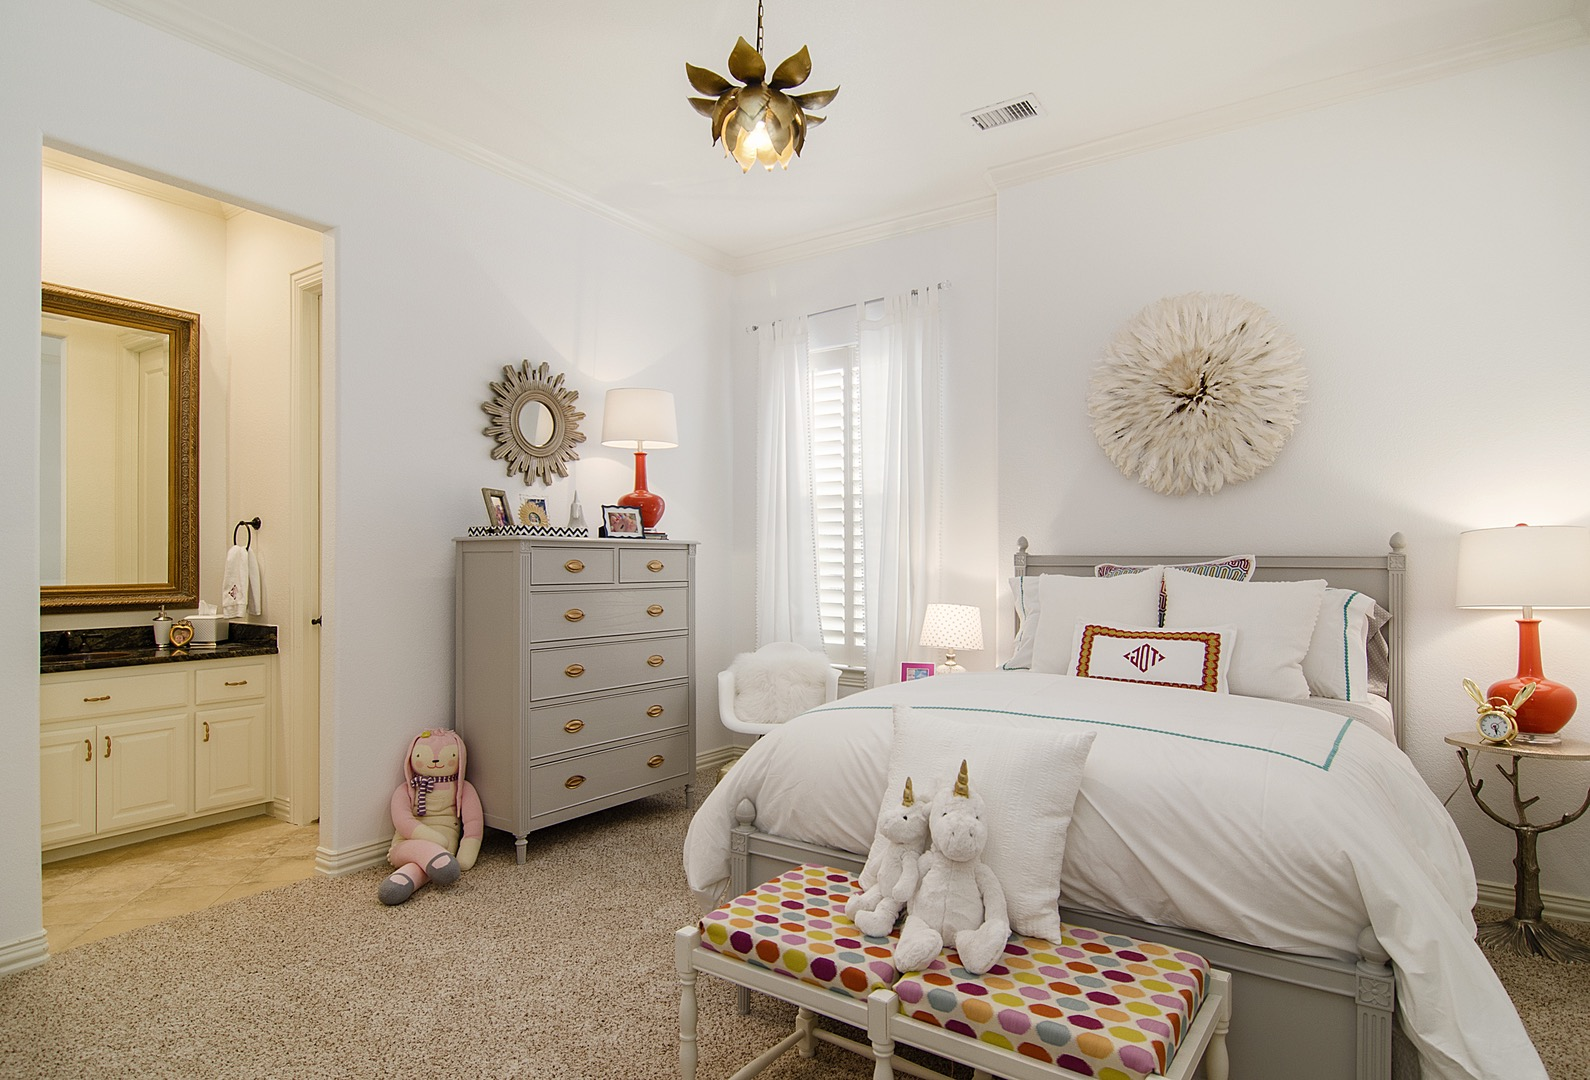 Pretty Contemporary Girl's Bedroom With Whimsical Accents (View 23 of 30)